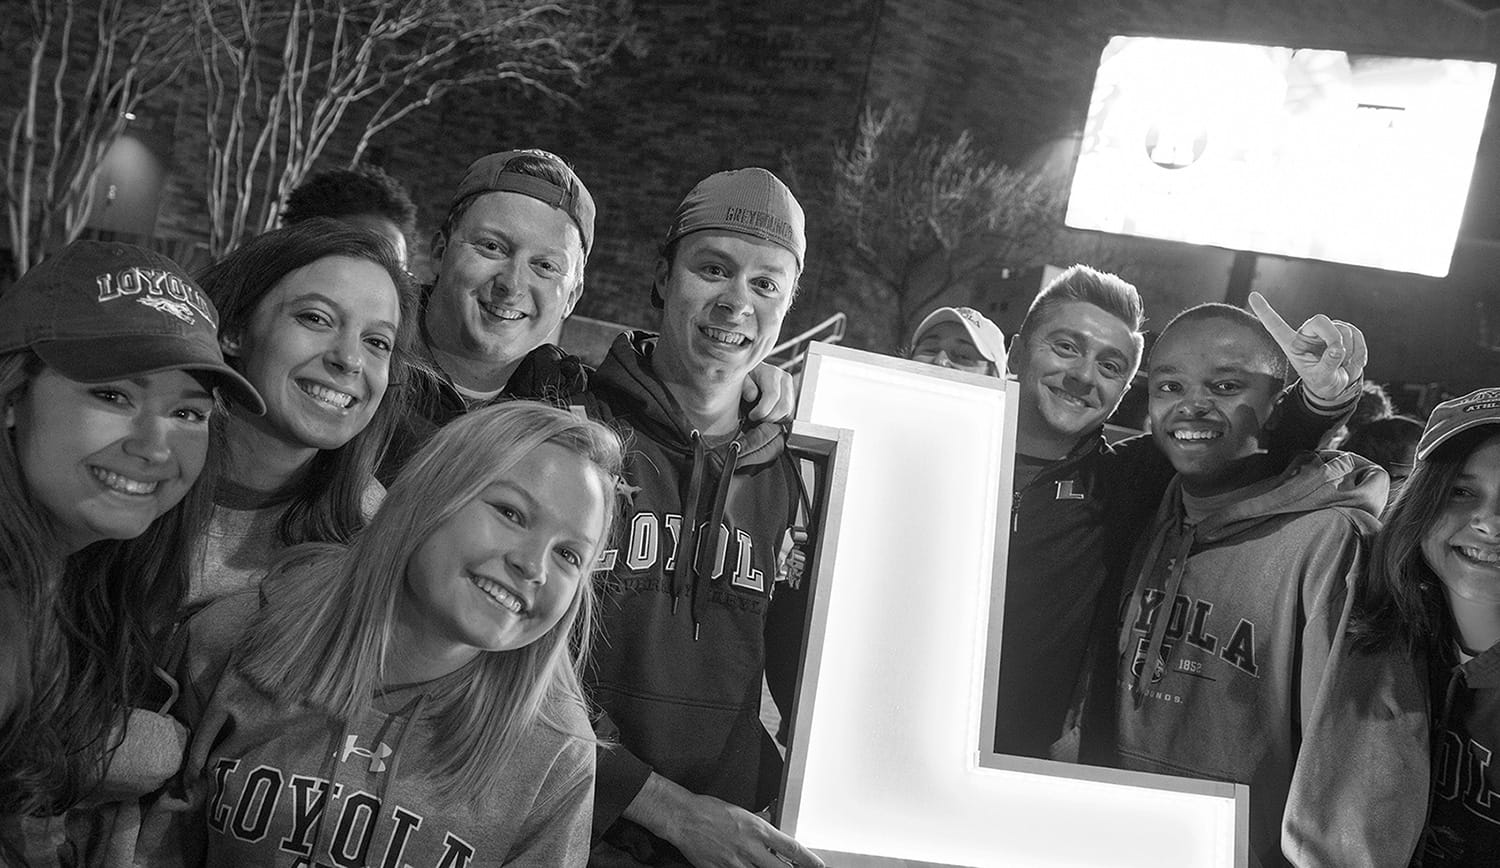 A group of students posing for the camera while holding a glowing L